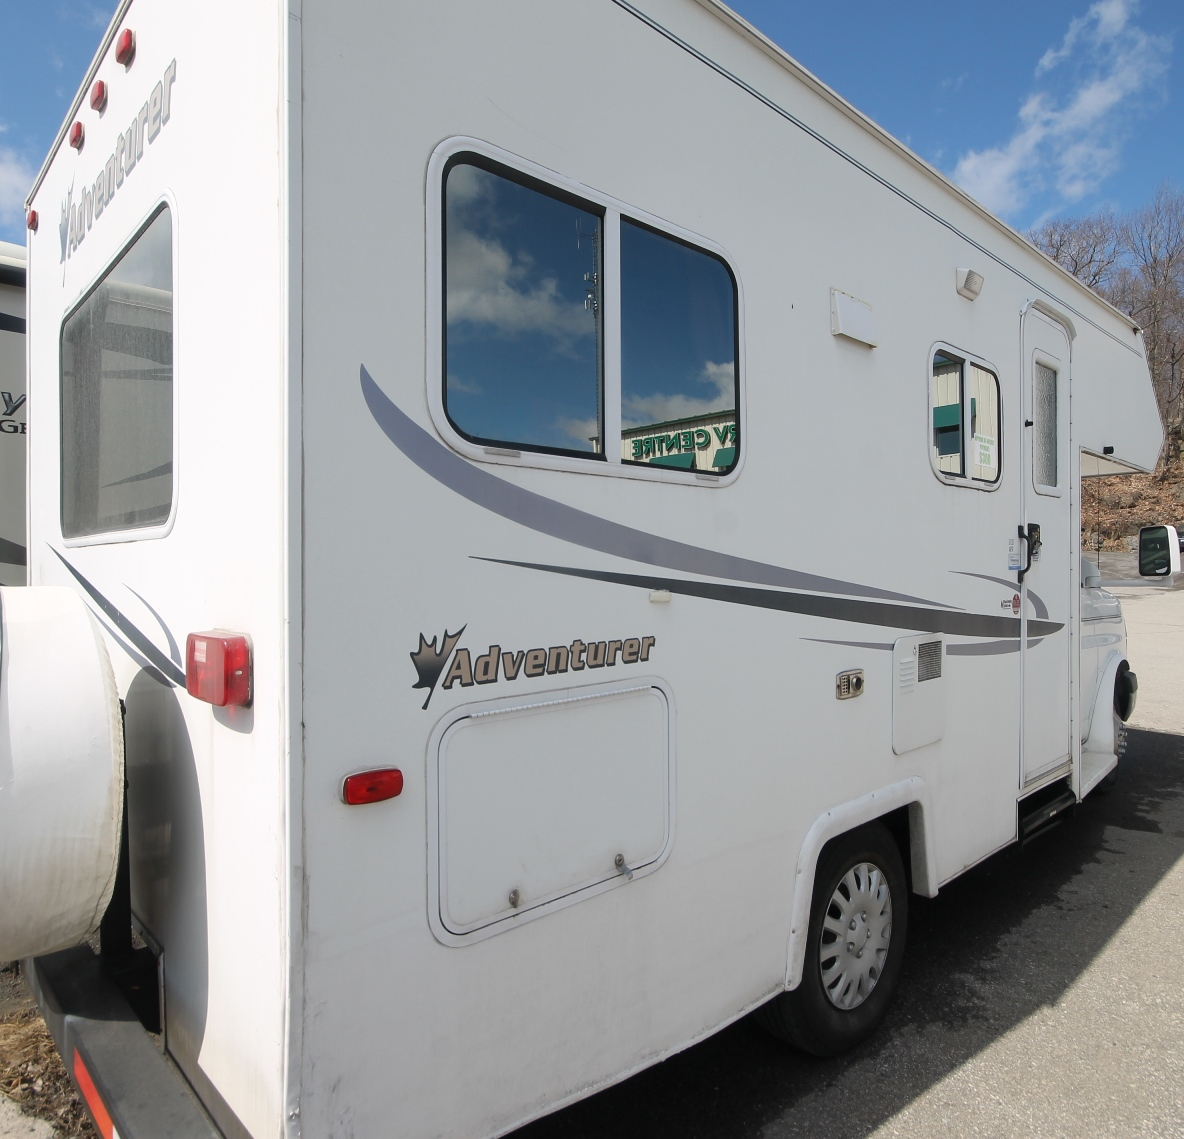 New and Used RV Motorhomes, Travel Trailers, and Camper for